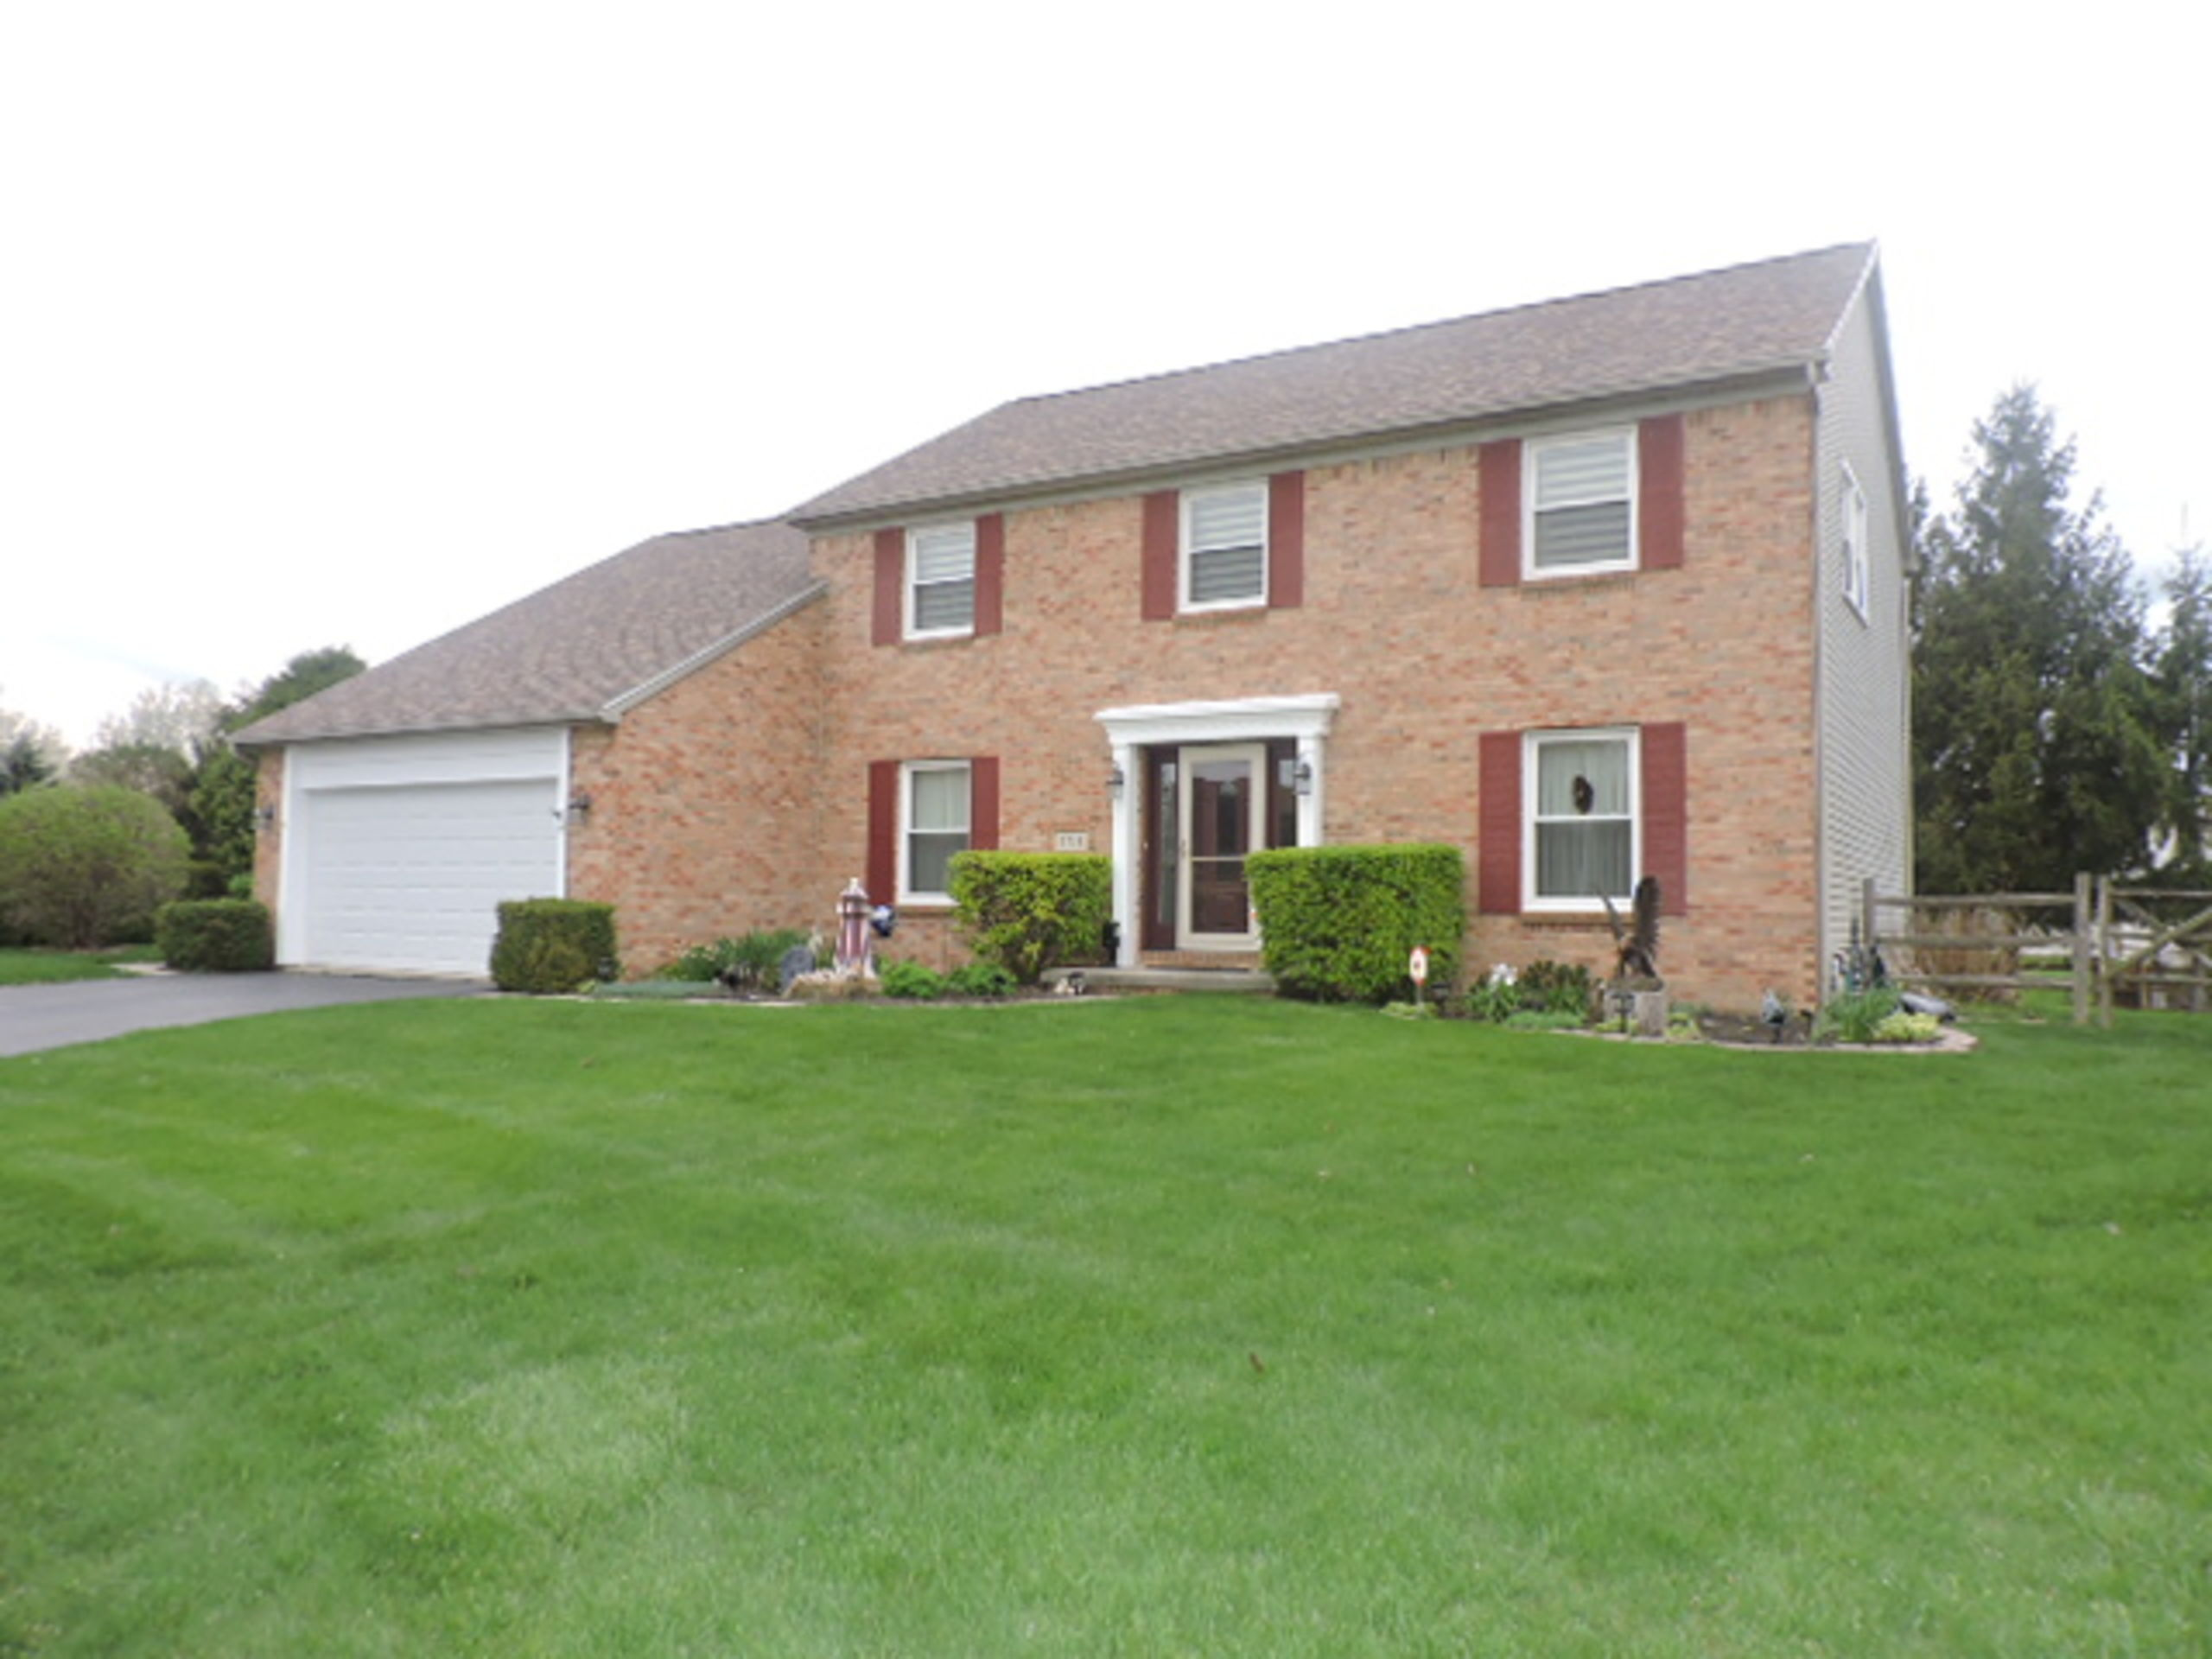 FEATURED HOLLAND LISTING: 7714 Rome Court HOLLAND, OHIO 43528 LISTED FOR $269,900